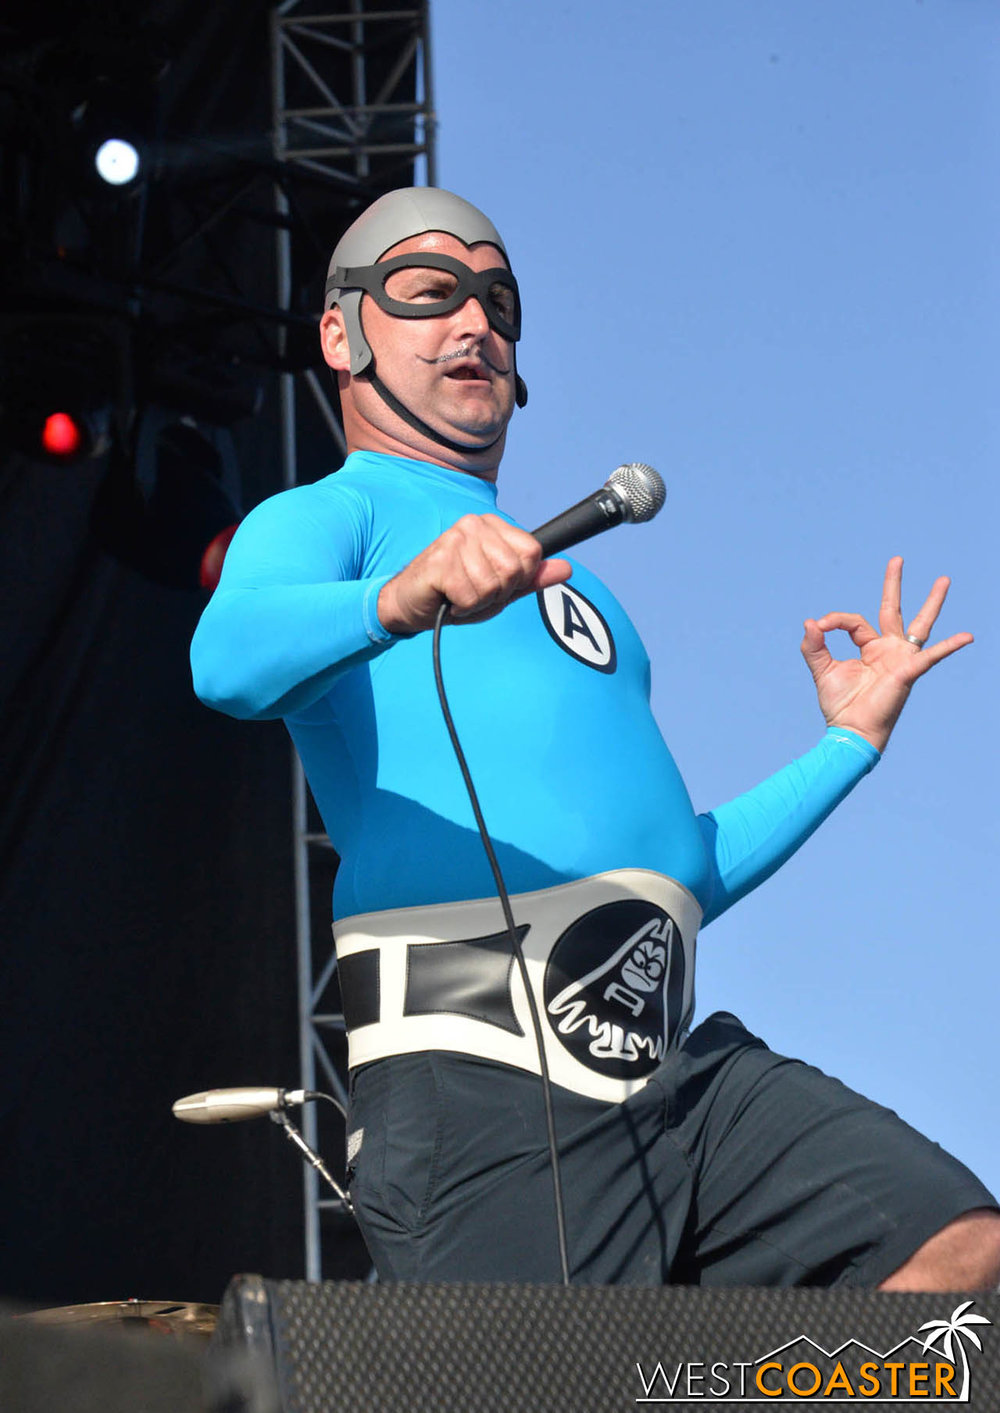 B2tB-18_0504-D-Music-3-Aquabats-0022.jpg